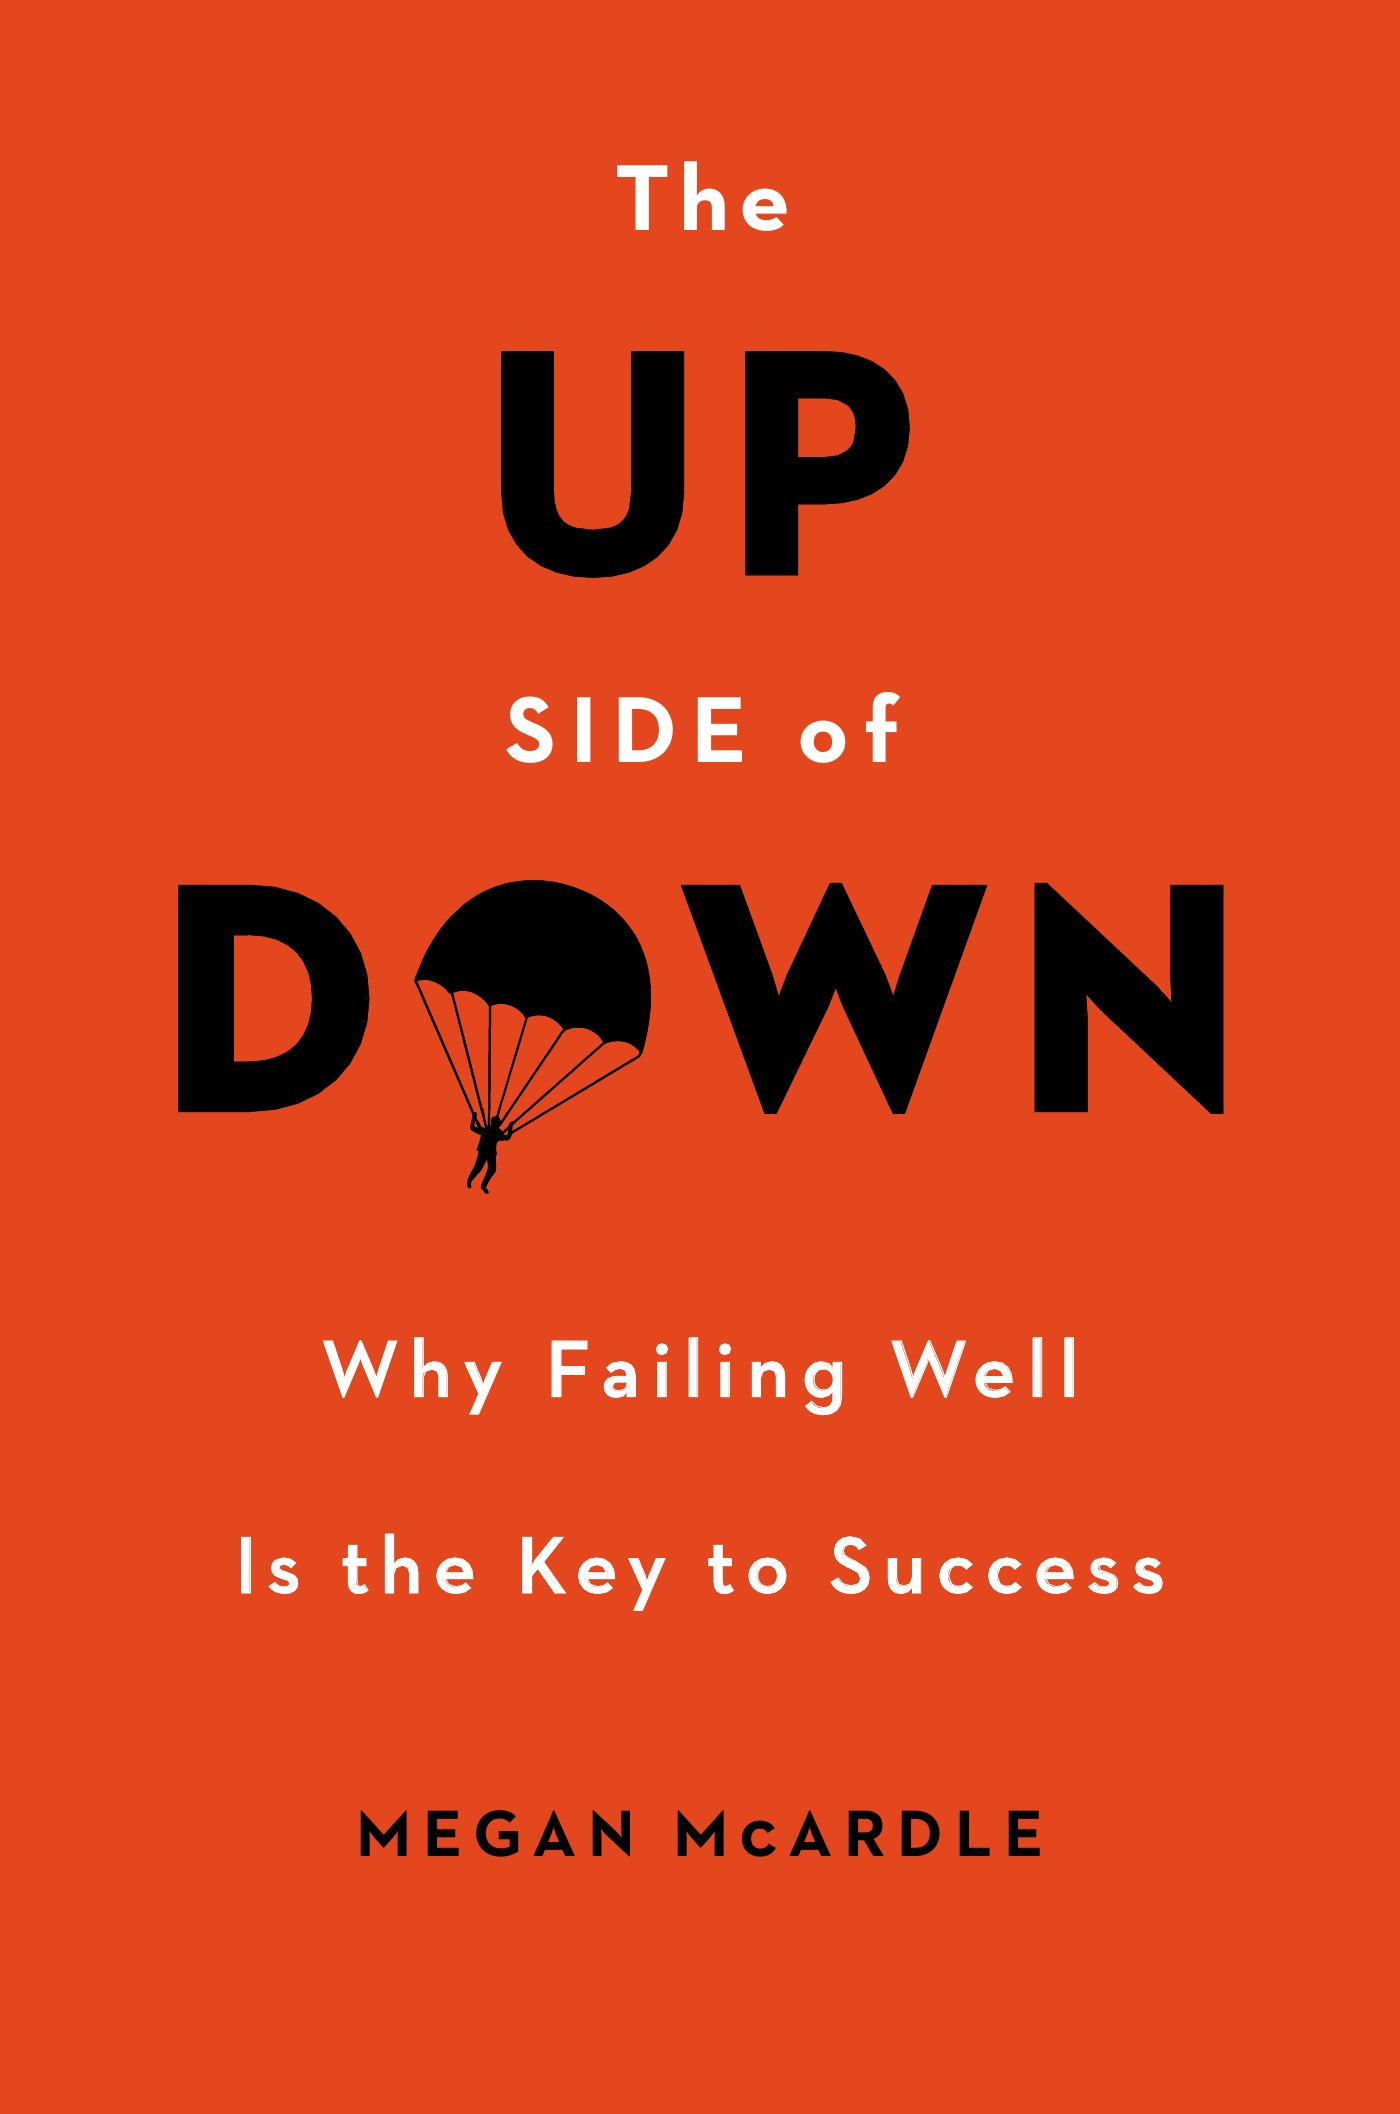 Why Failing Well Is the Key to Success - Megan McArdle